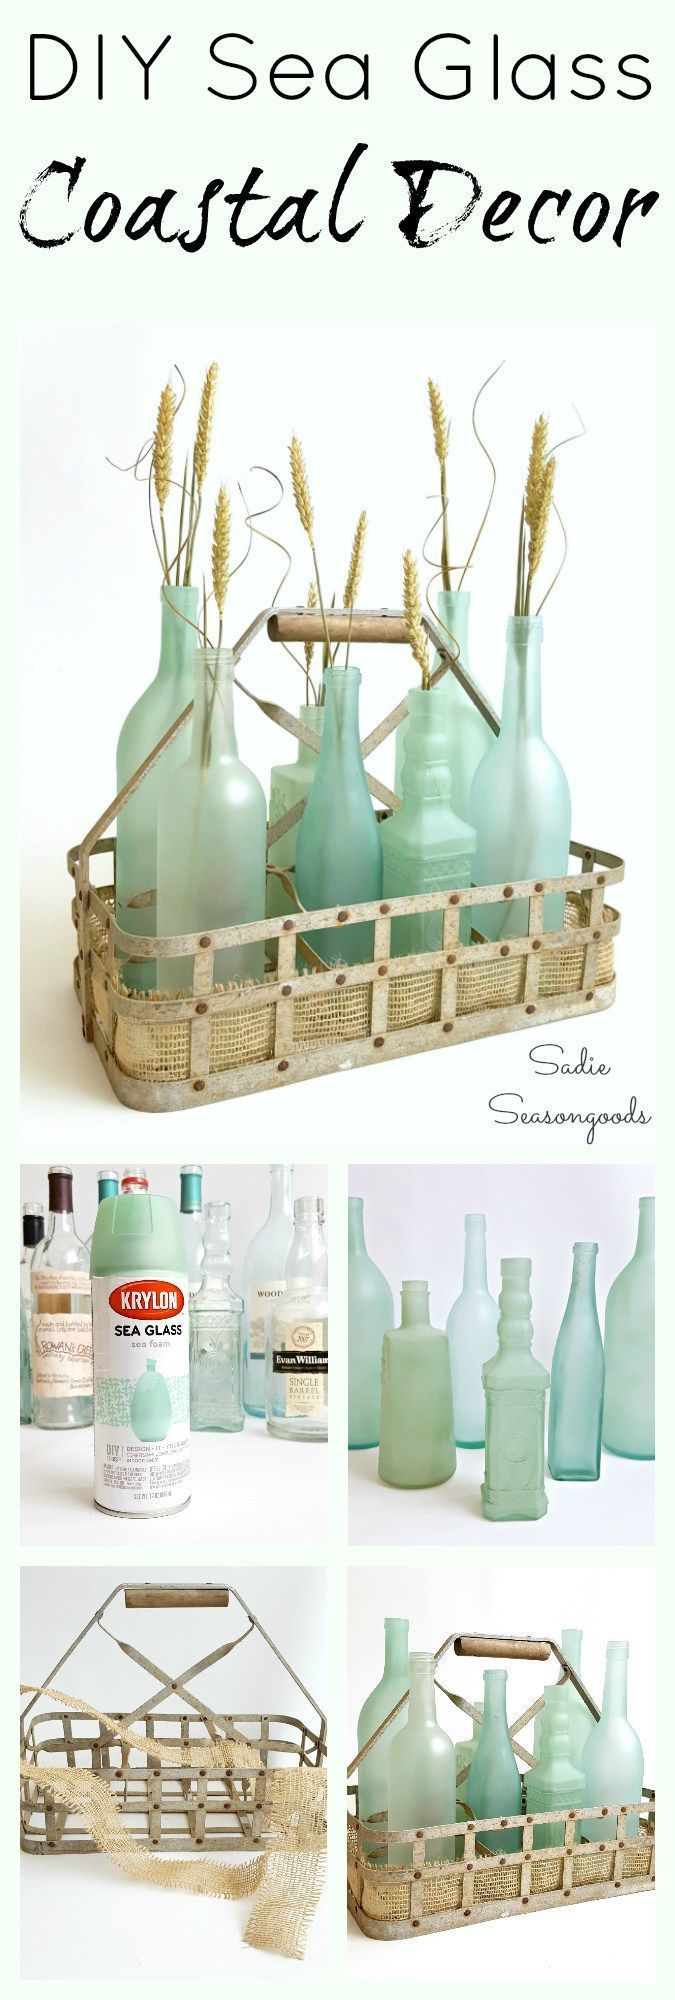 Creating DIY Coastal Beach Decor with Sea Glass Spray Paint and Frost Etching Effect ... - DIY Home Decor: Projects, Makeovers & Crafts - #Beach #Co ...